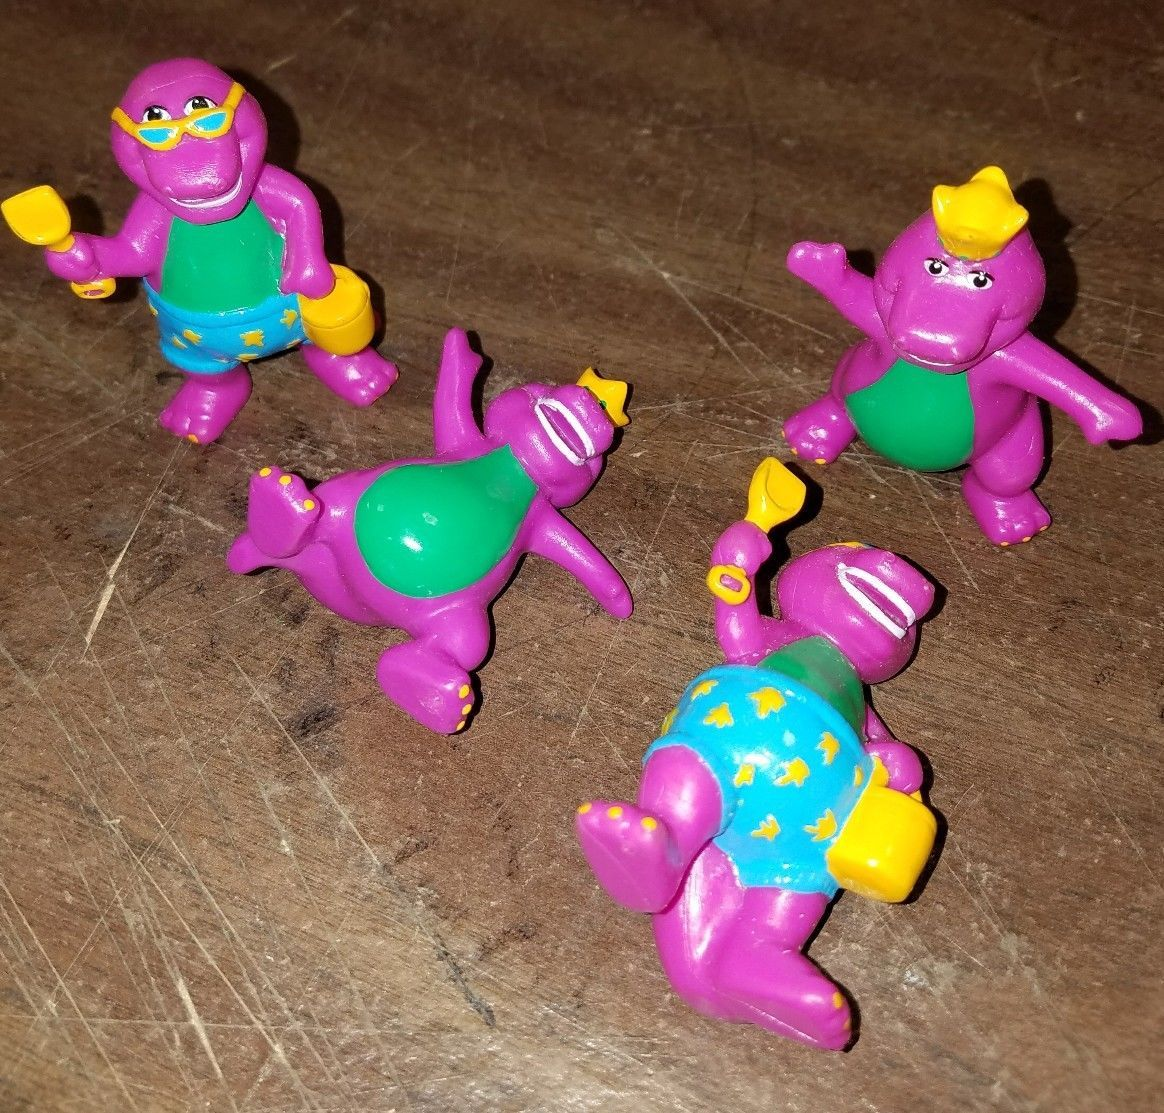 Lot of 4 1993 SMALL BARNEY FIGURE IN RAINCOAT LYONS GROUP unique ...